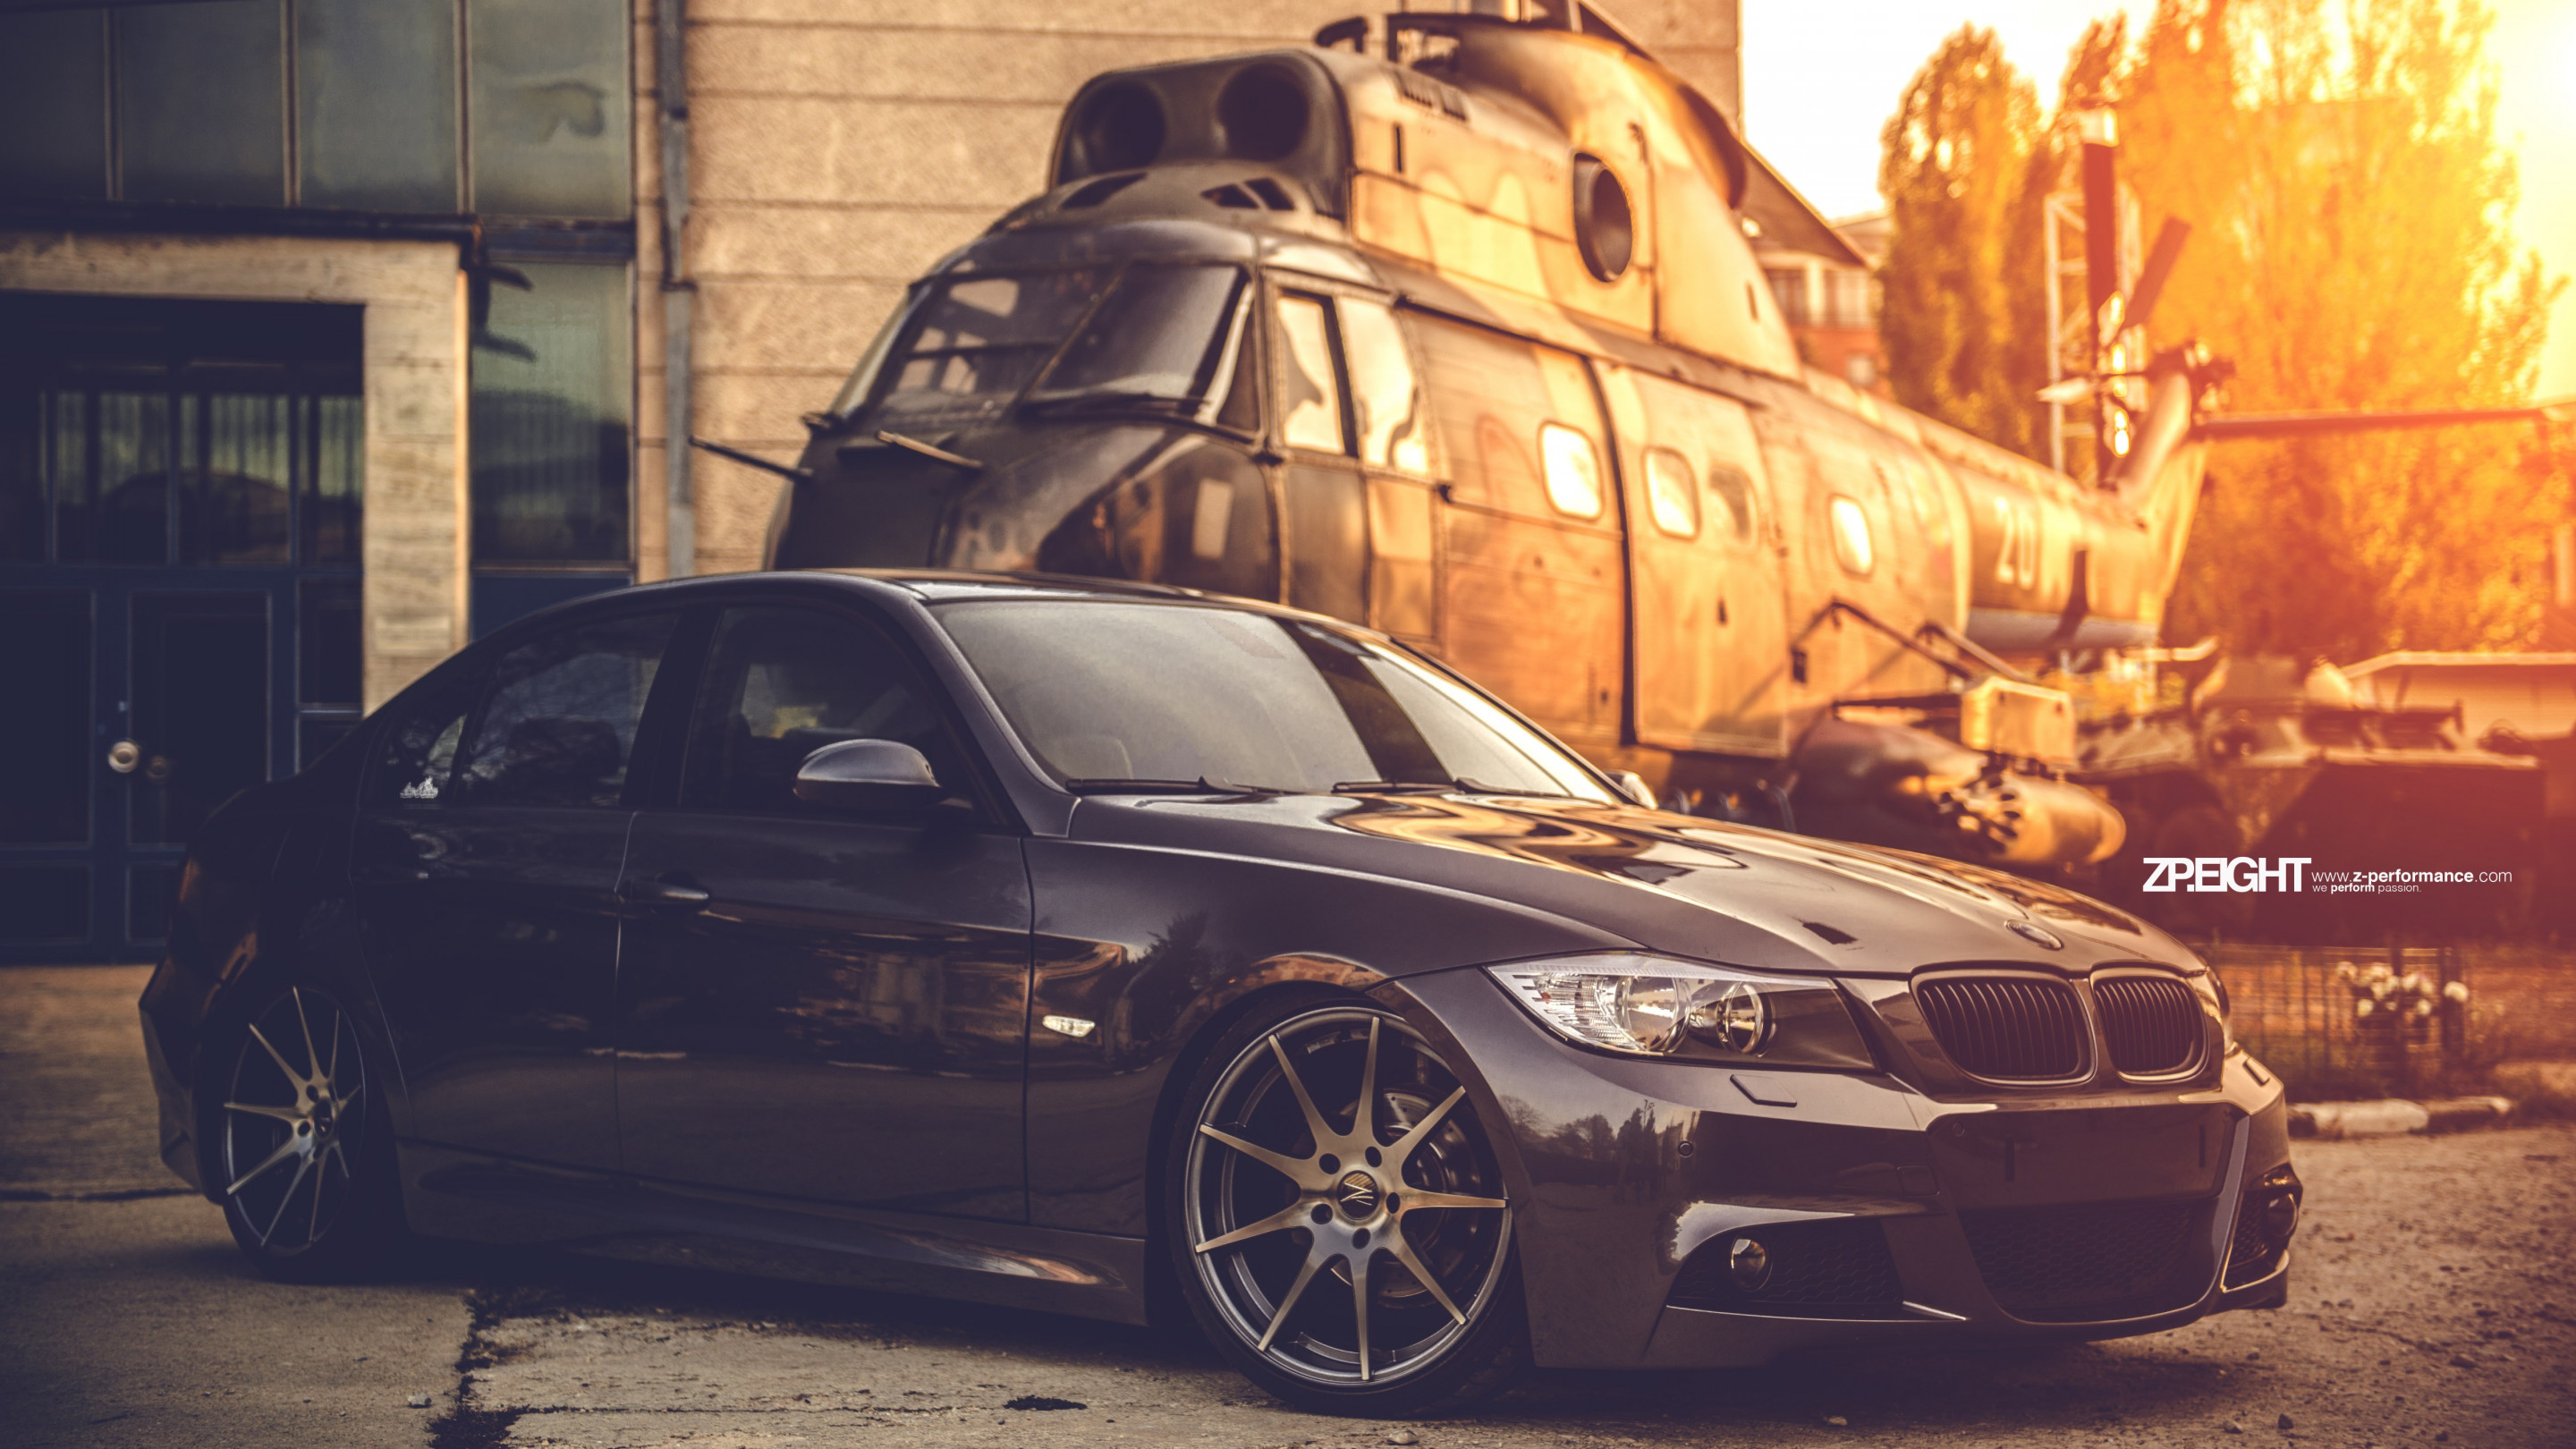 BMW E90 and one helicopter wallpaper 2880x1620